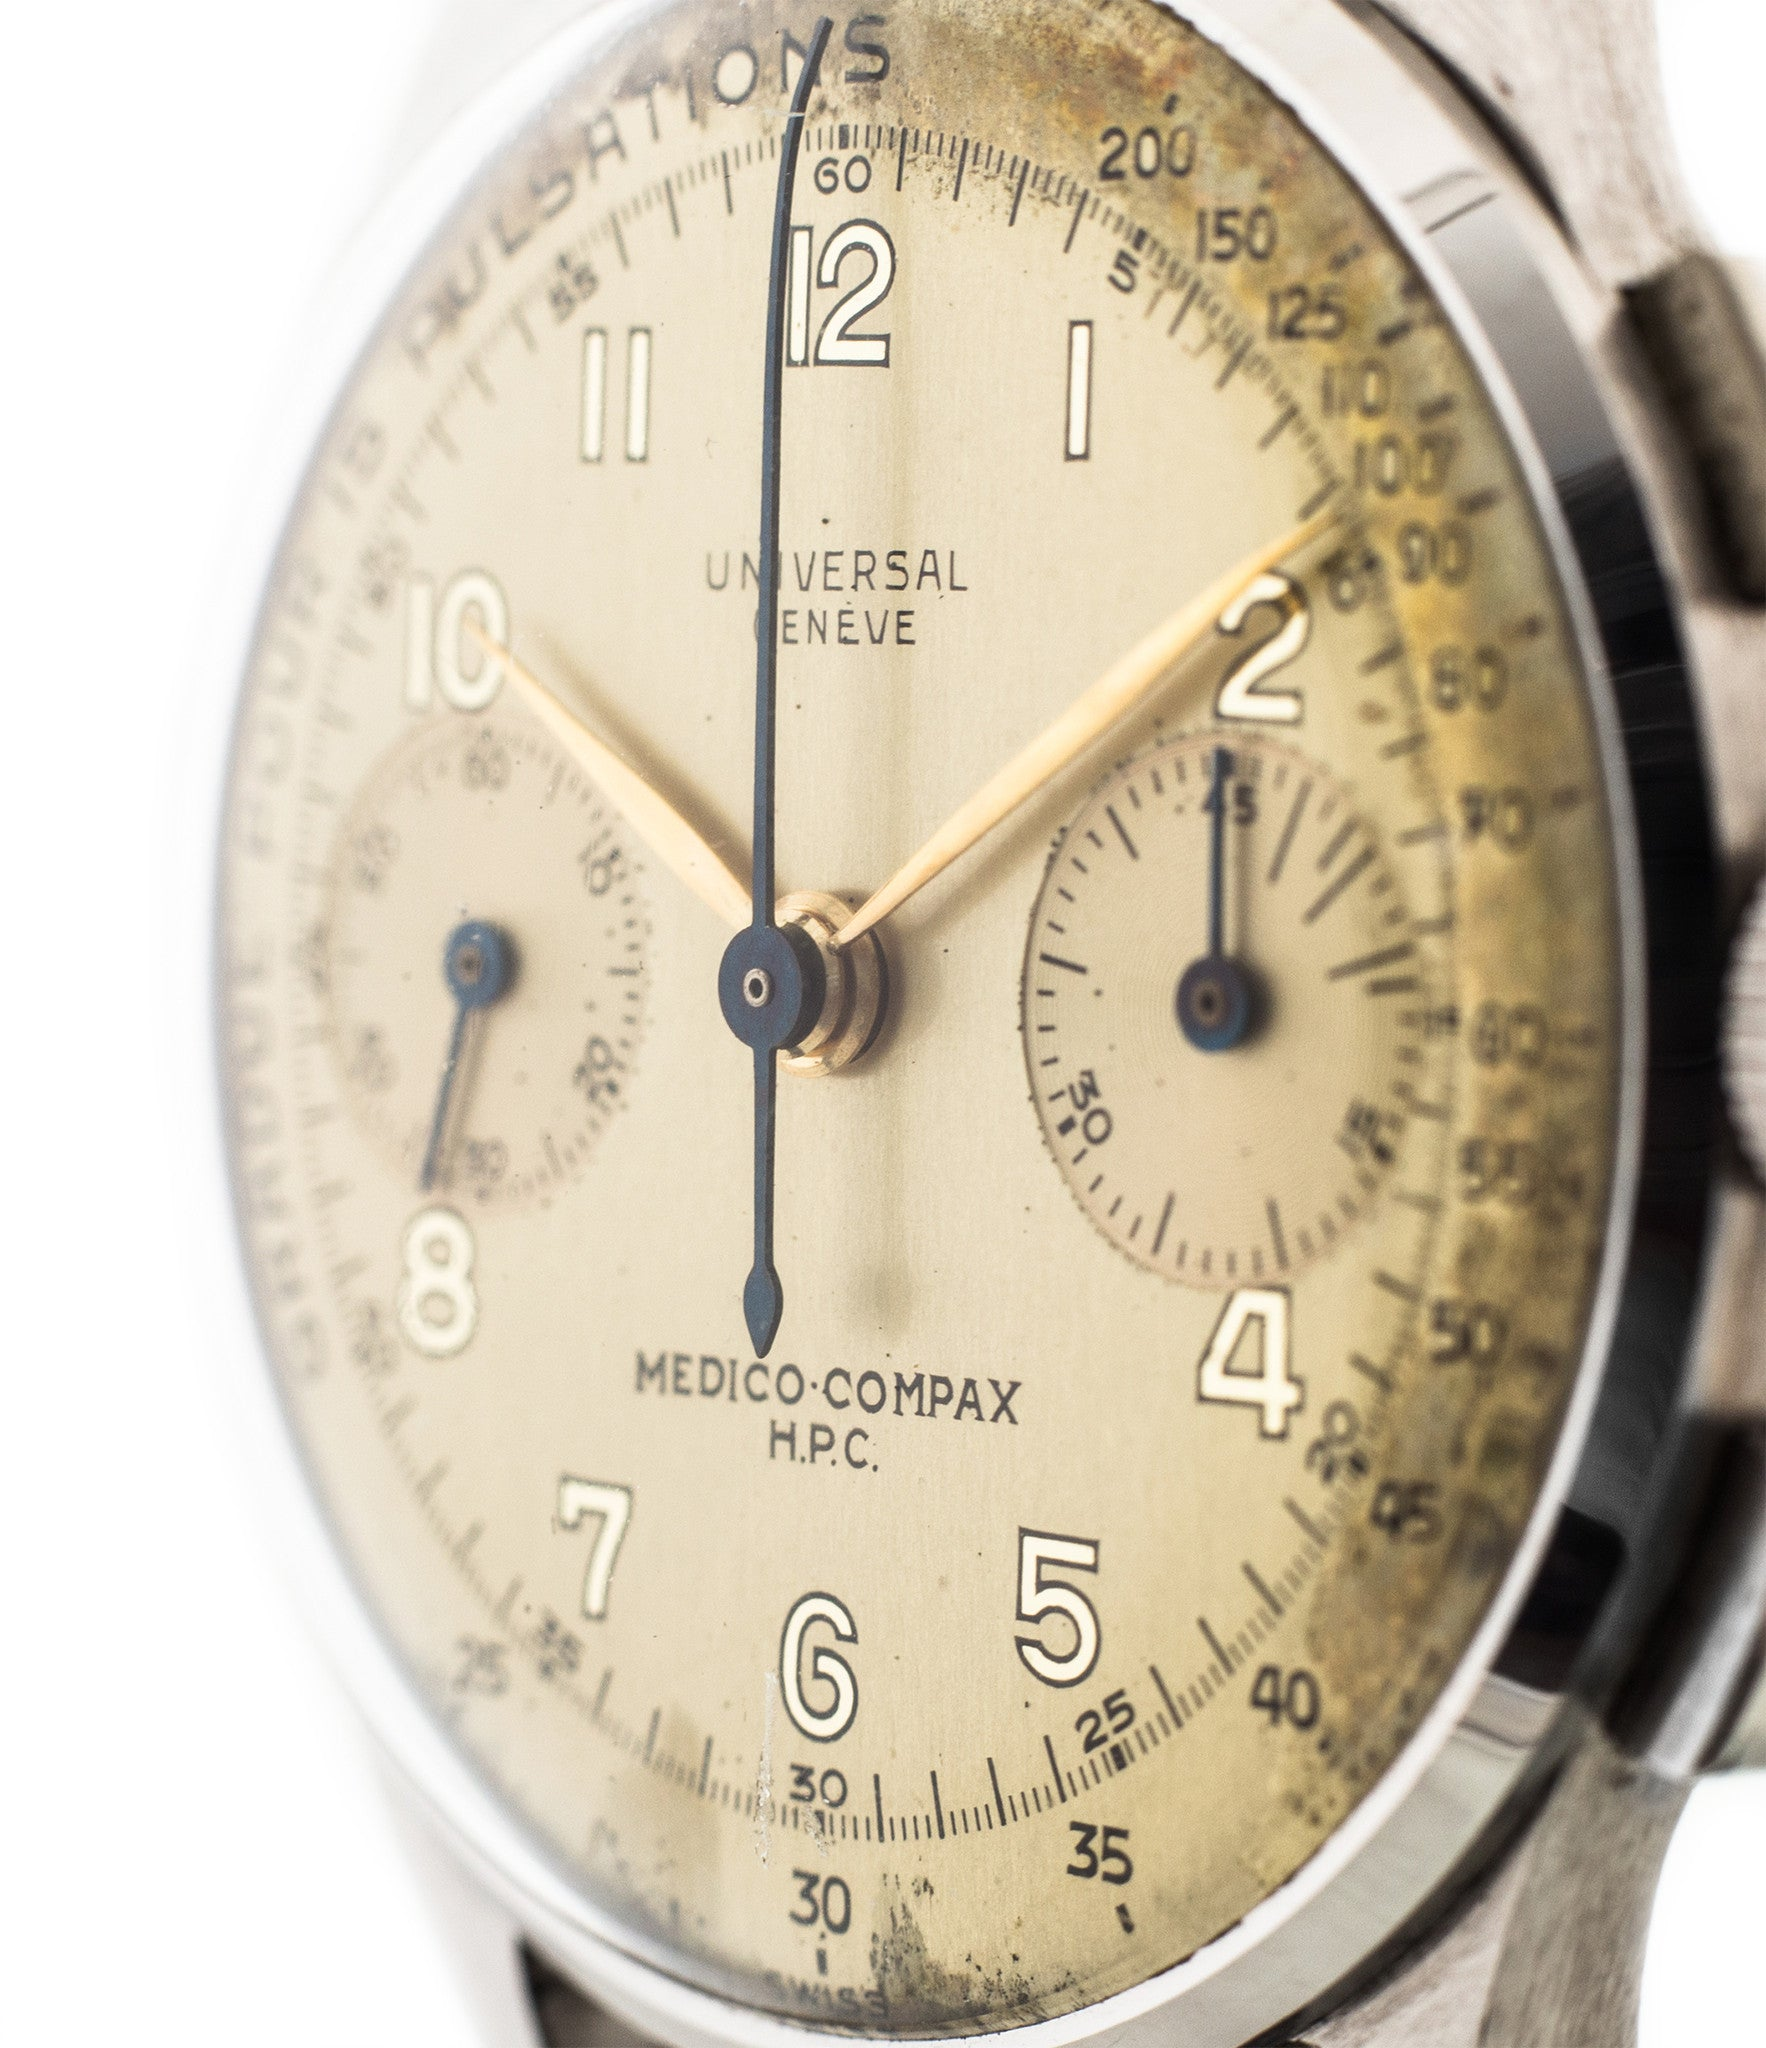 buy vintage Universal Geneve Medico-Compax 22420 steel pulsometer rare doctors watch online for sale at WATCH XCHANGE London